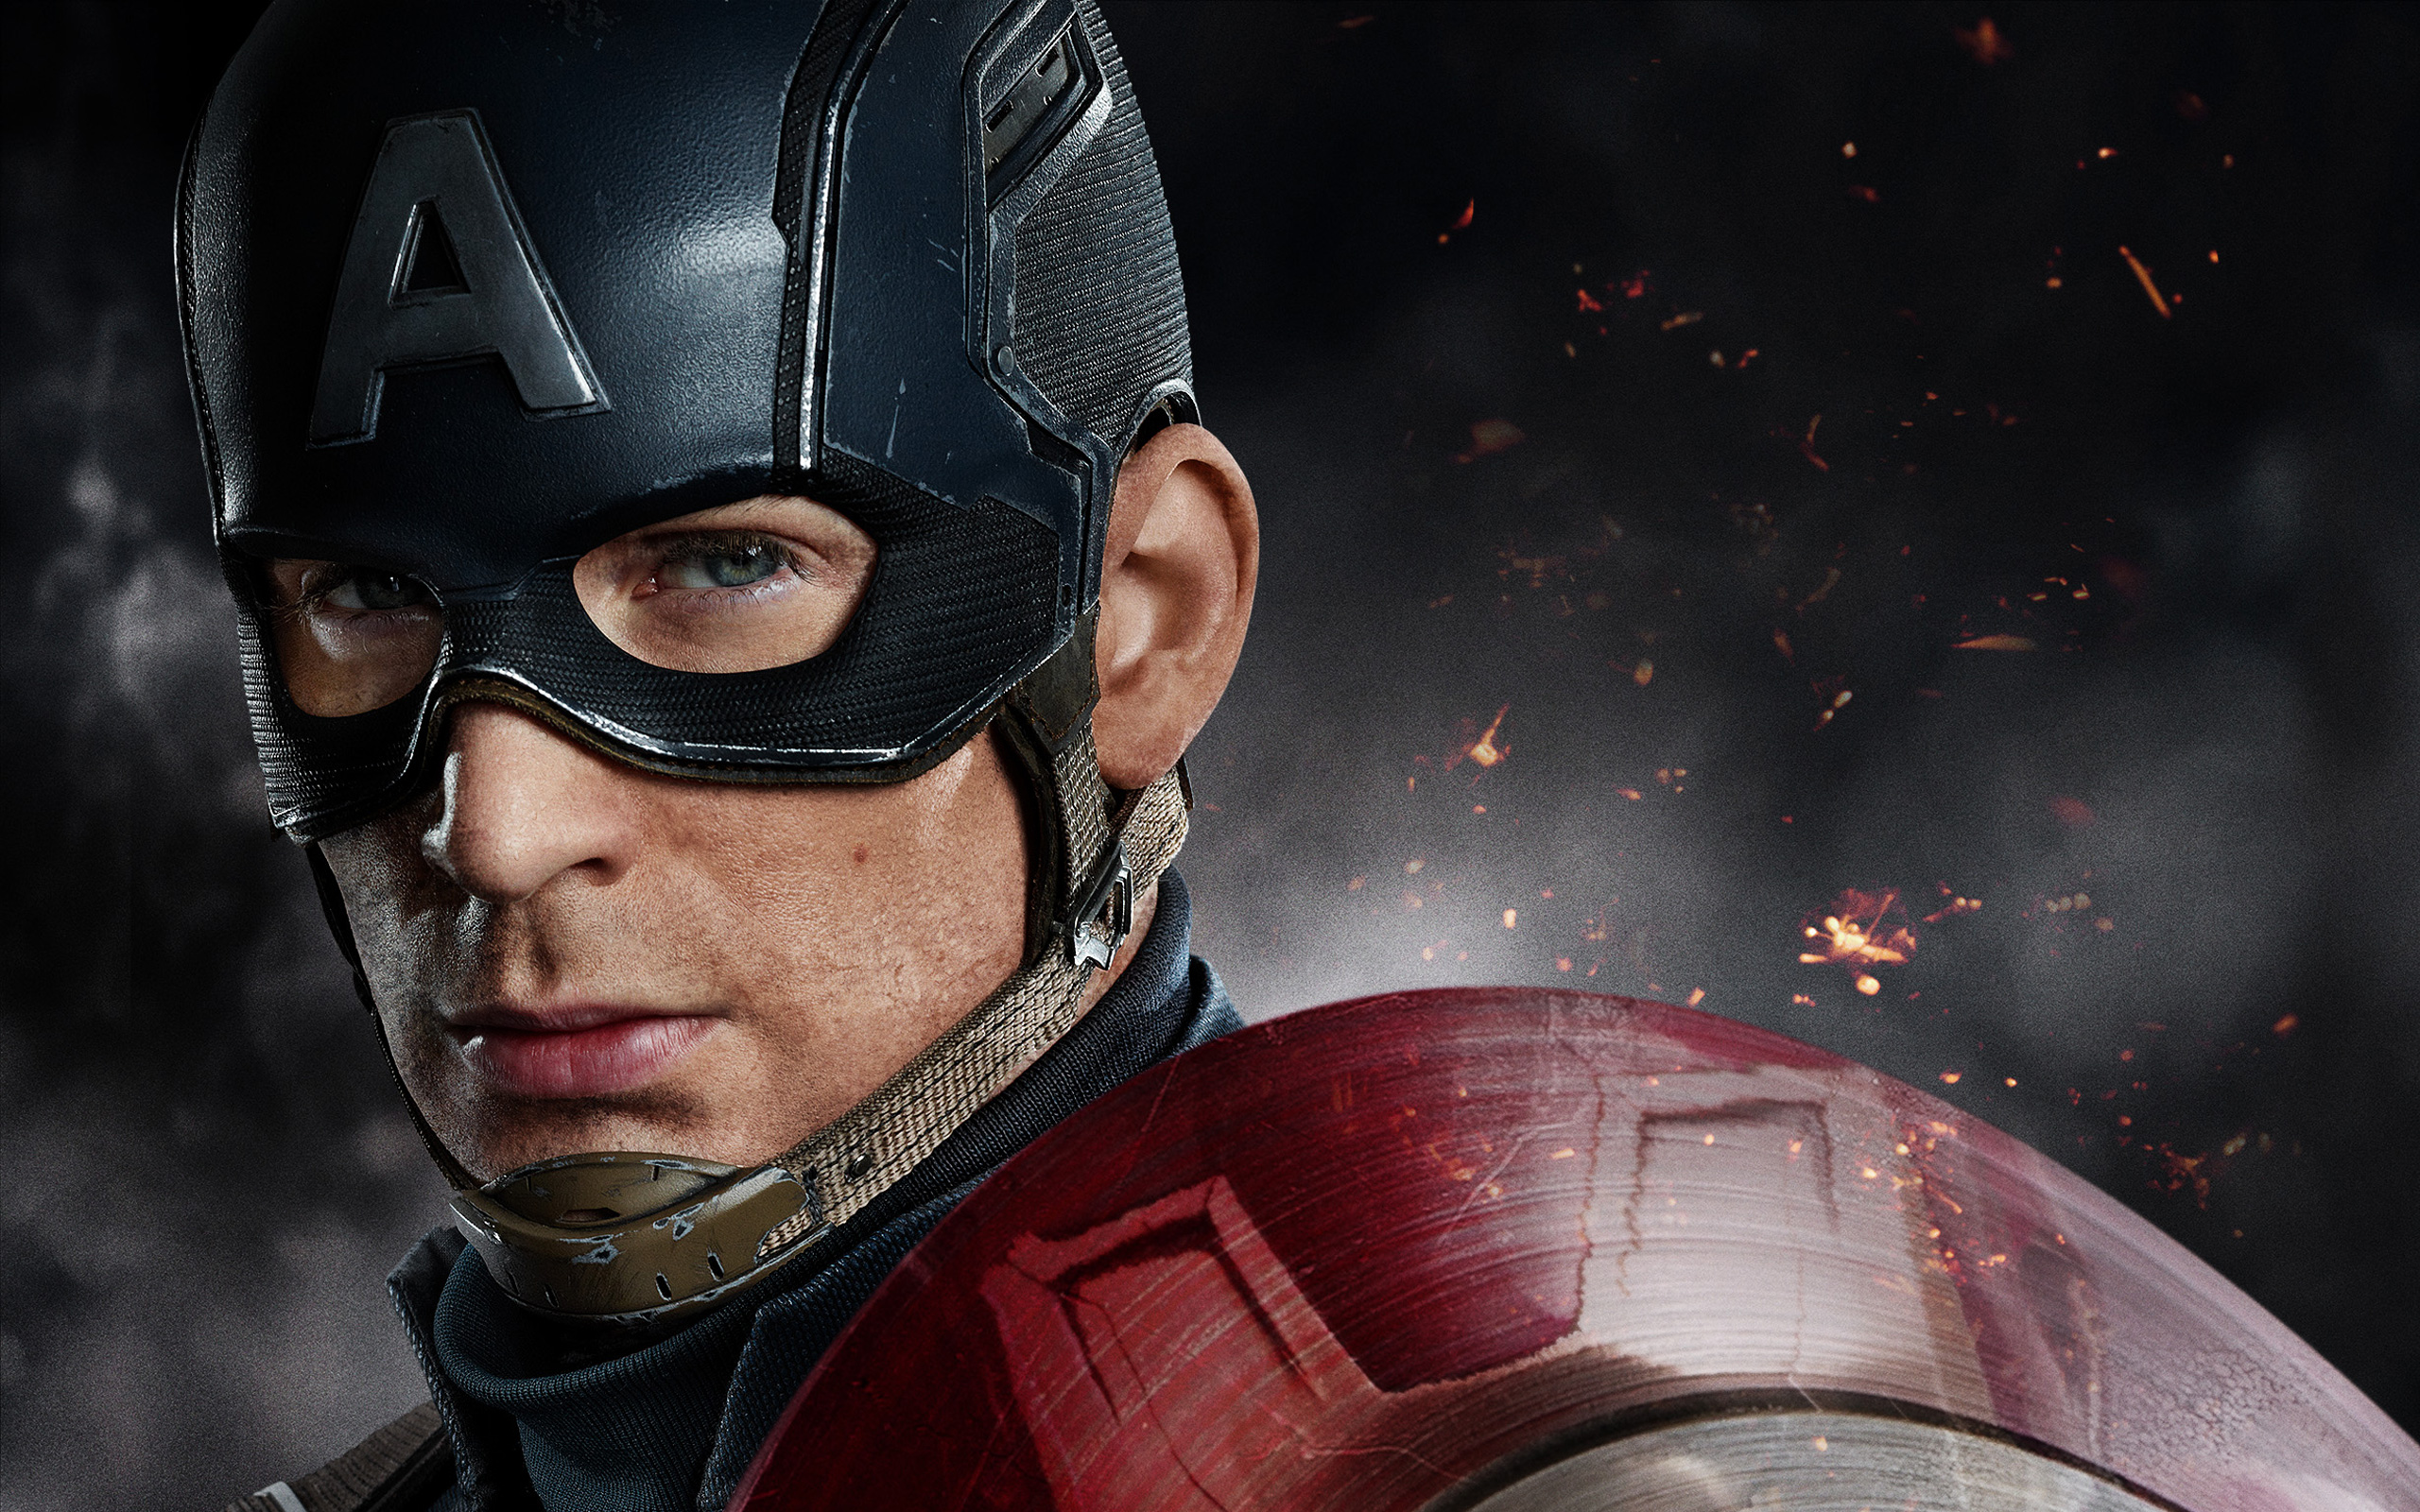 Photo of 4 Superpowers That Make Captain America An Unstoppable Force To Reckon With